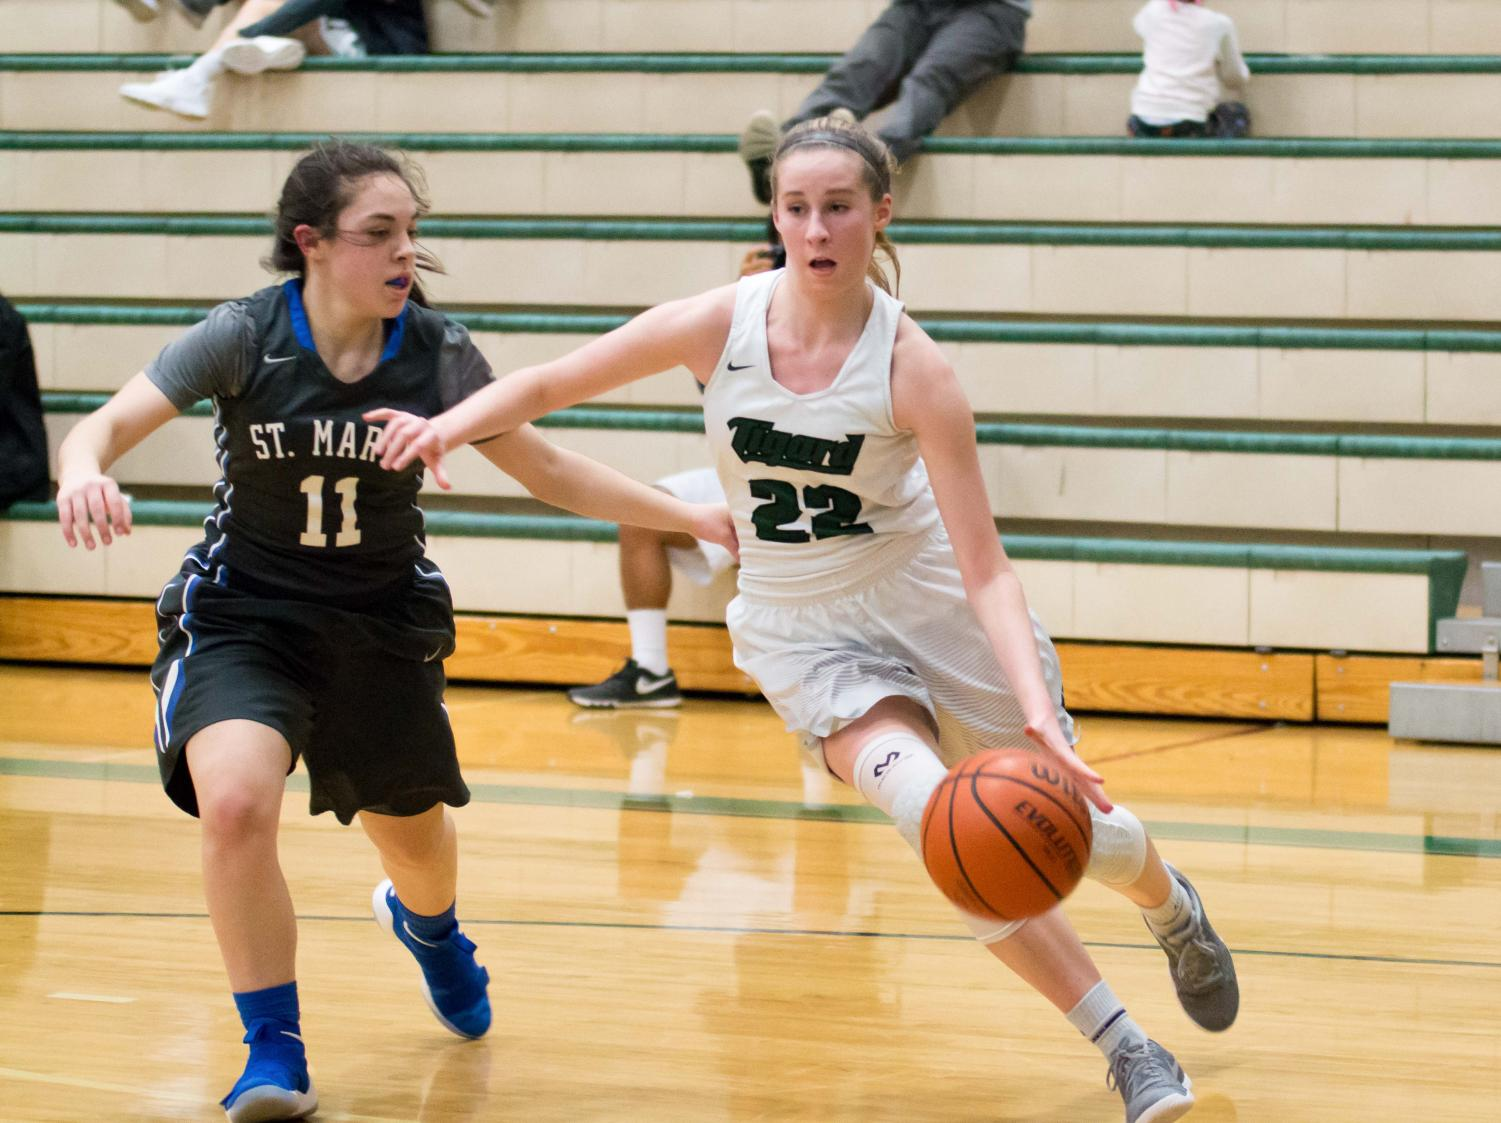 Delaney Leavitt drives to the basket in a game against St. Mary's.